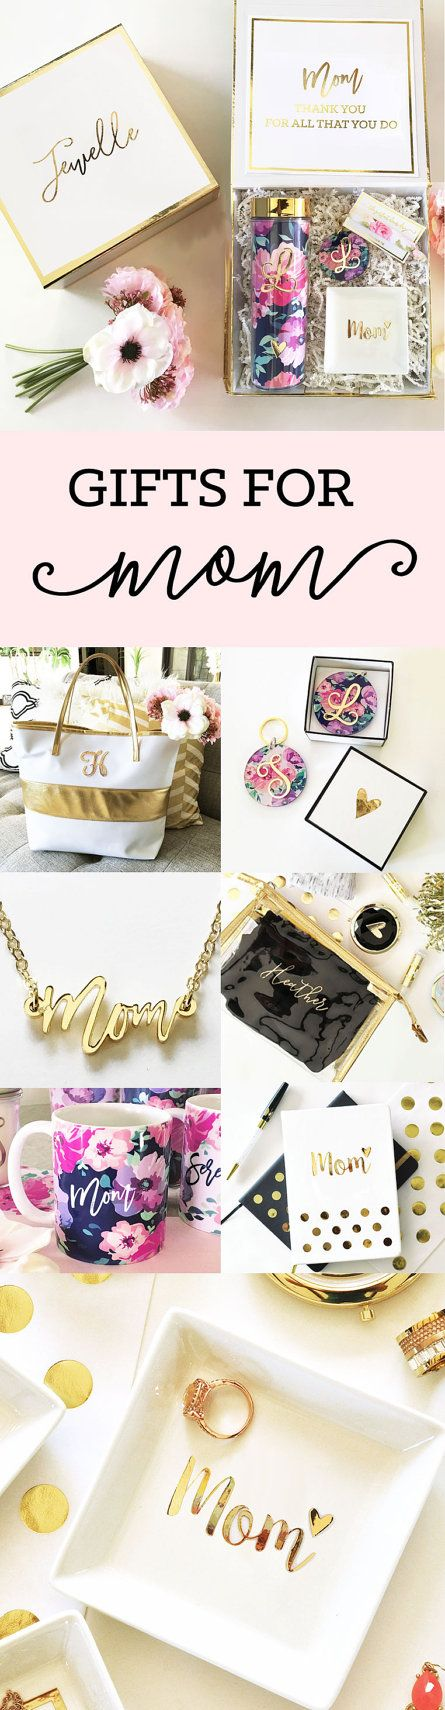 Mom Gifts | Mom Gift Ideas for Mom | Mothers Day Gift Ideas | Mother of the Bride Gift Ideas | Christmas Gifts for Mom by Weddingfavorites